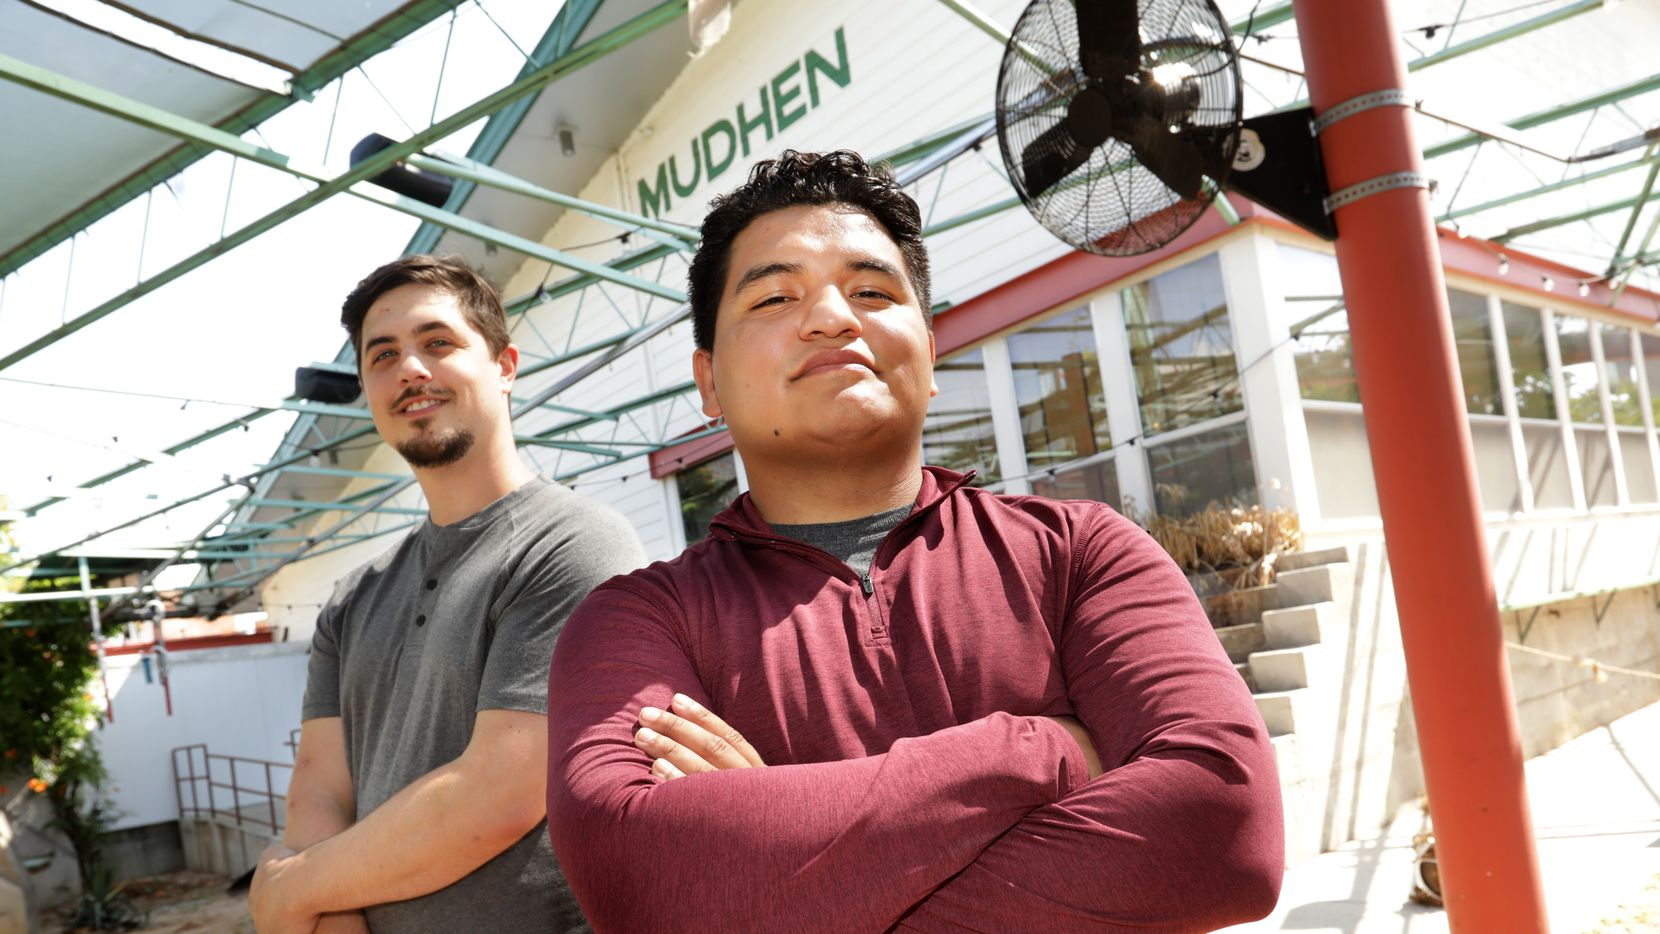 Charles Nelson, left, and David Herrera pose for a photograph at the upcoming Hurdy Gurdy restaurant, located in the old Mudhen building at the Dallas Farmers Market.